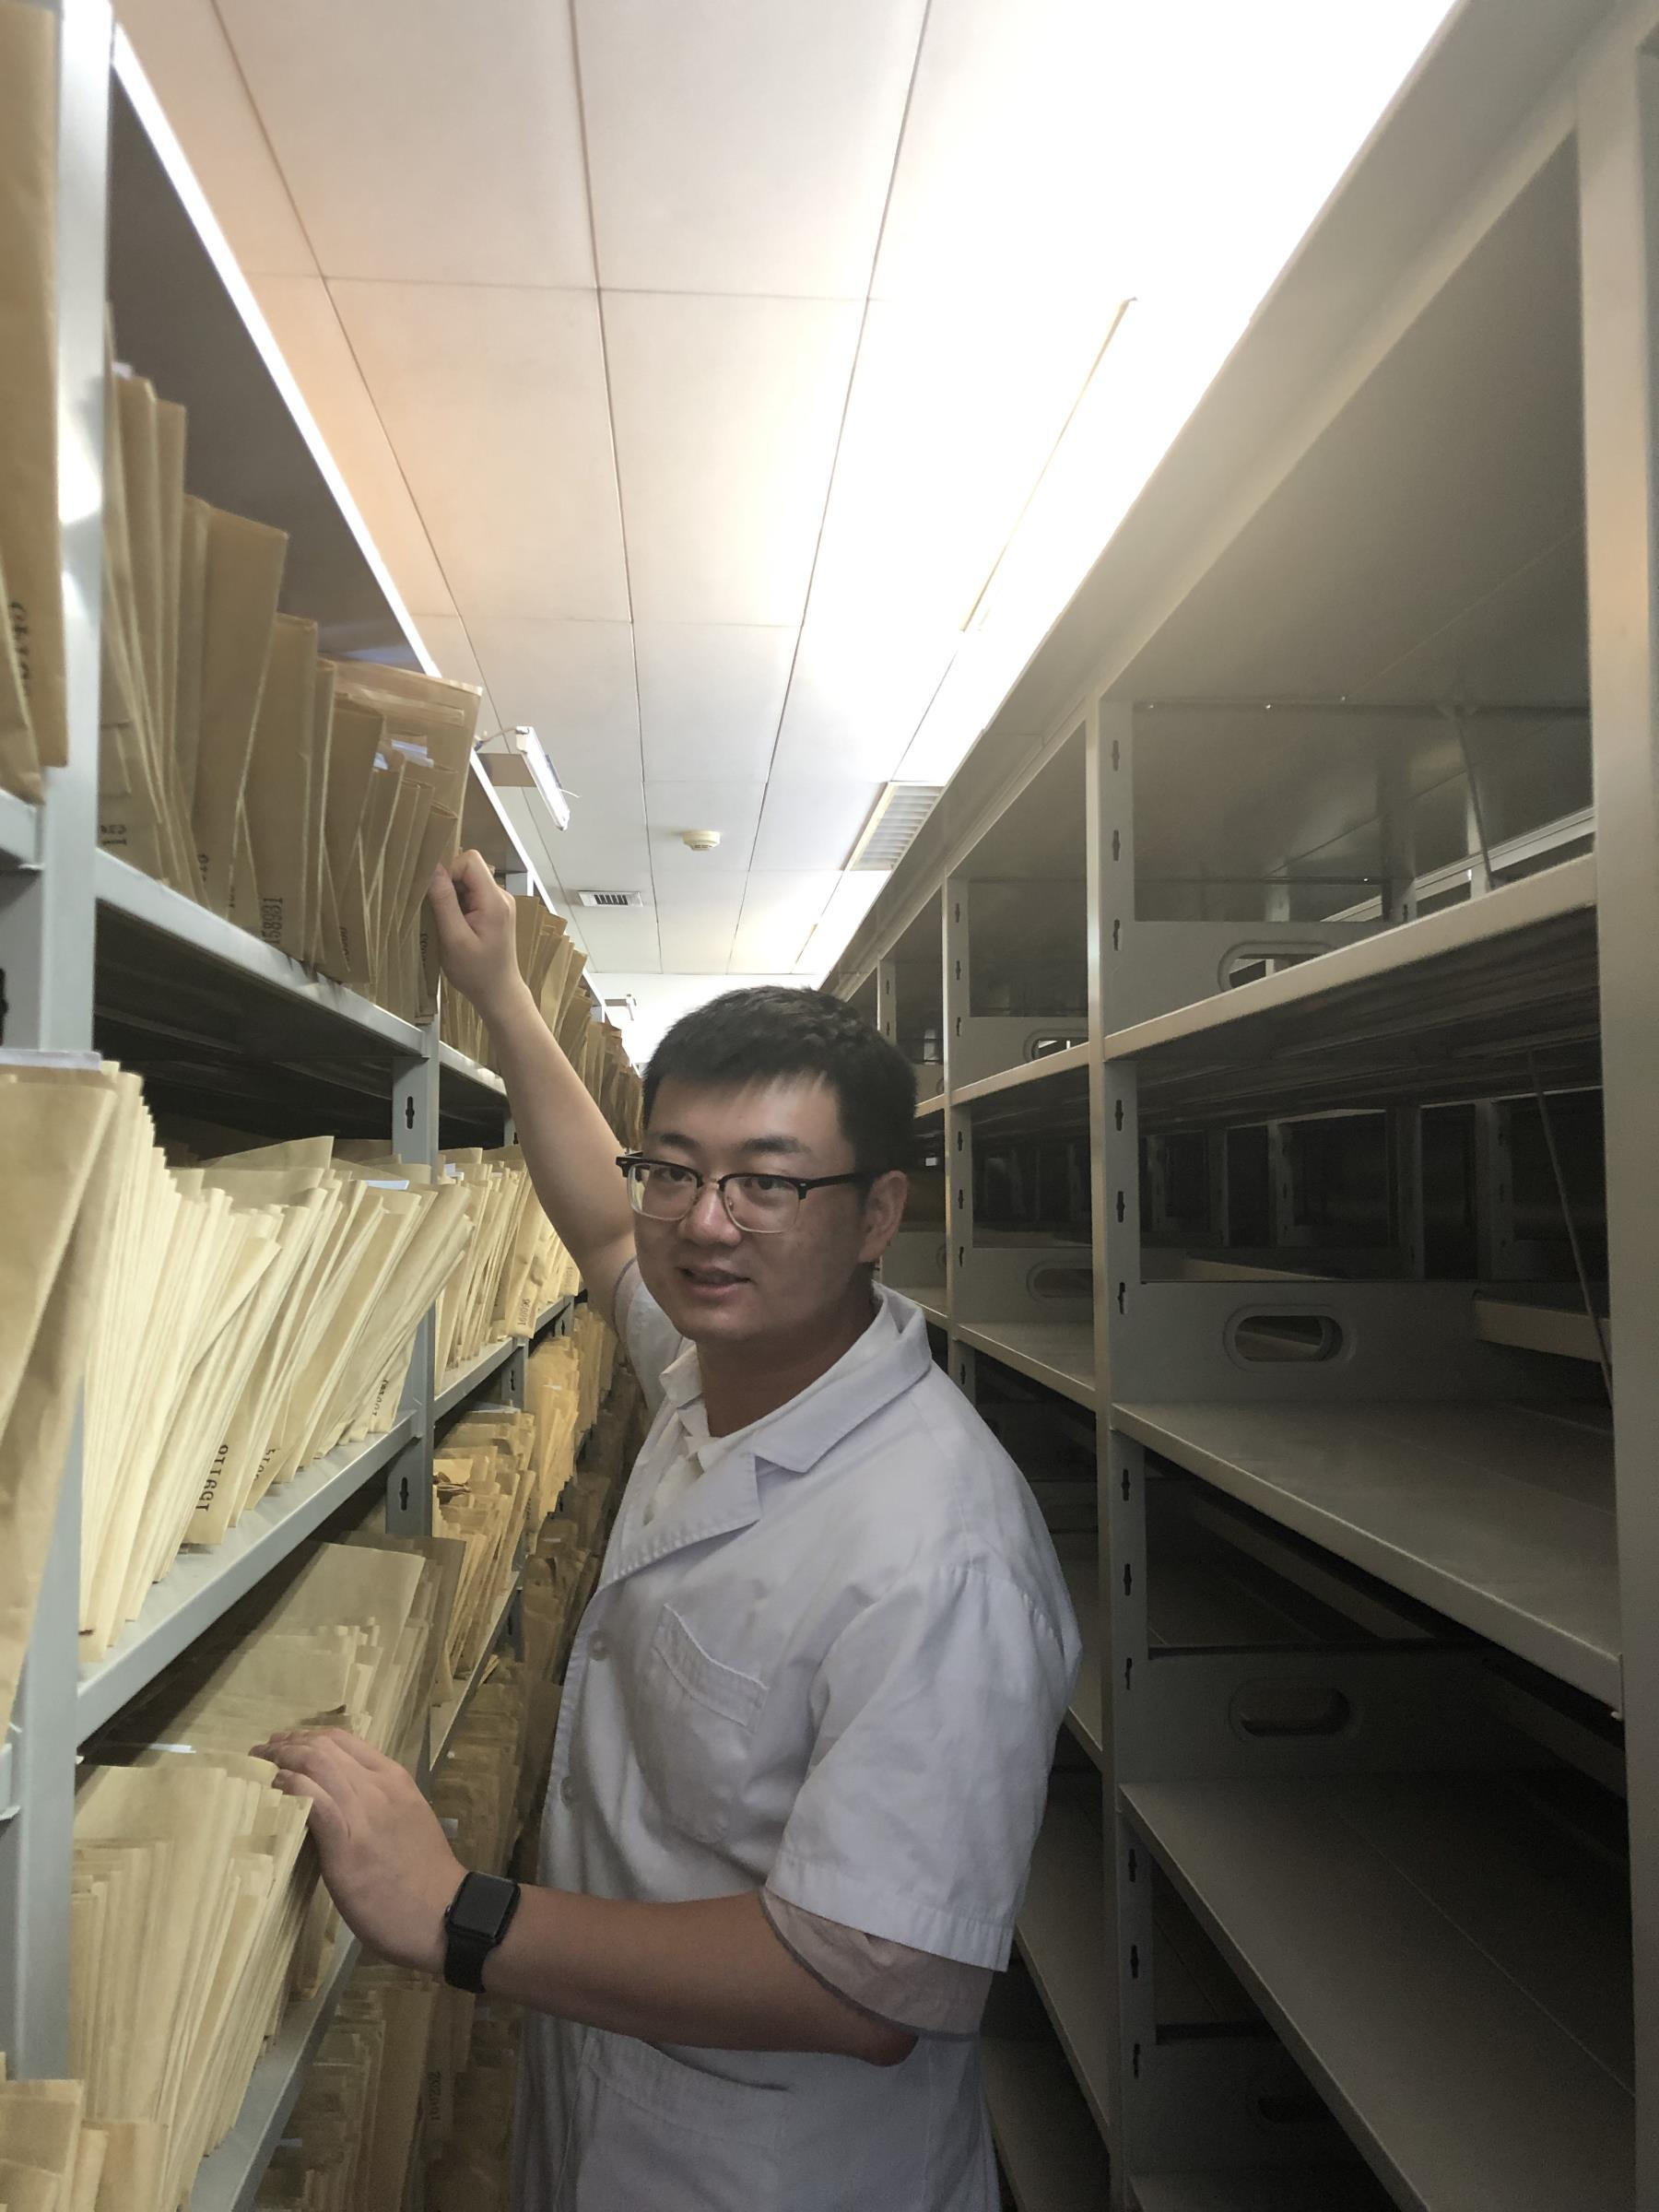 Peiyuan in the file room